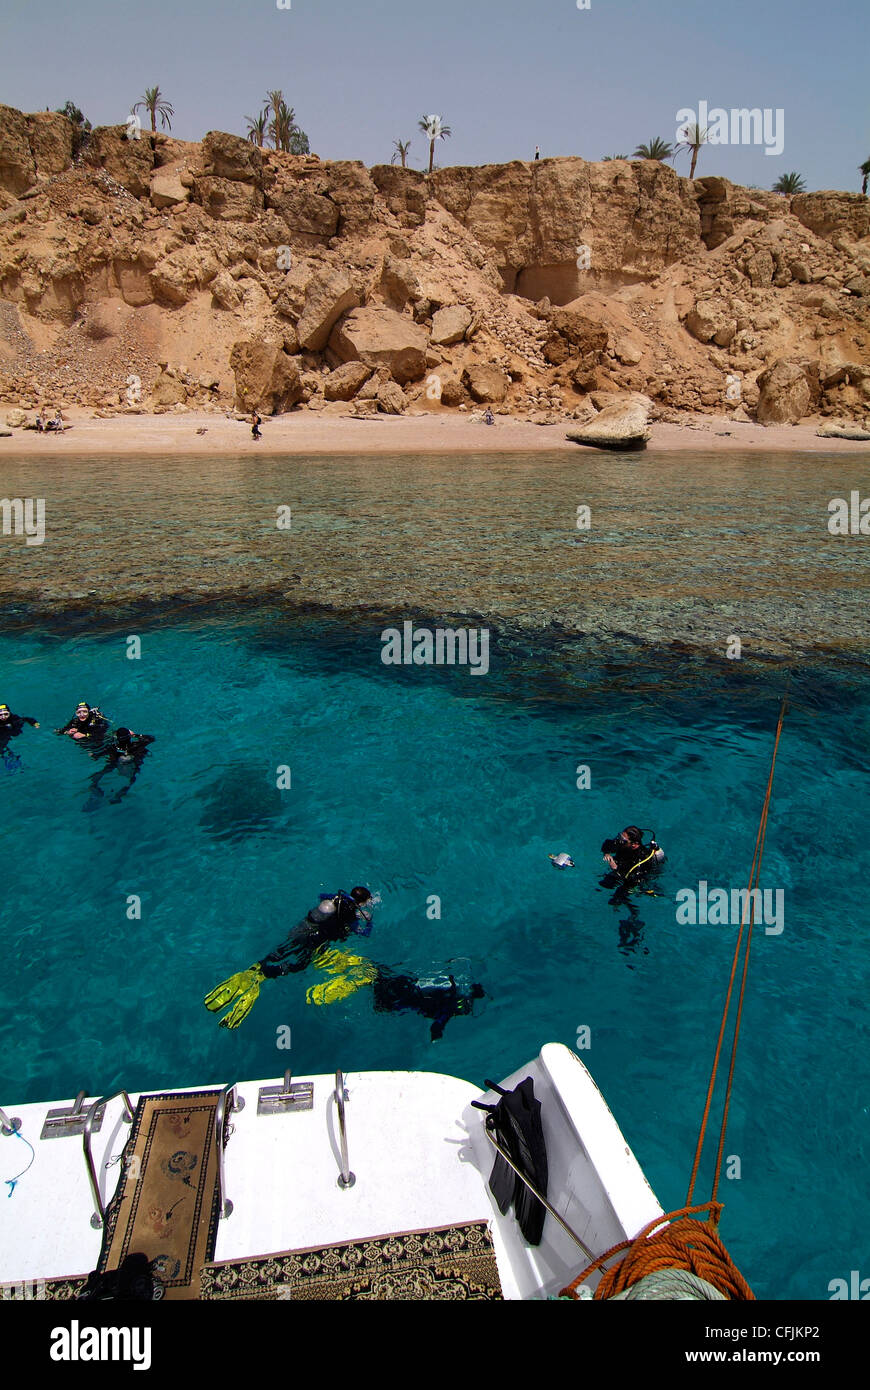 Divers in the Red Sea, Sharm el-Sheikh, Egypt, North Africa, Africa - Stock Image